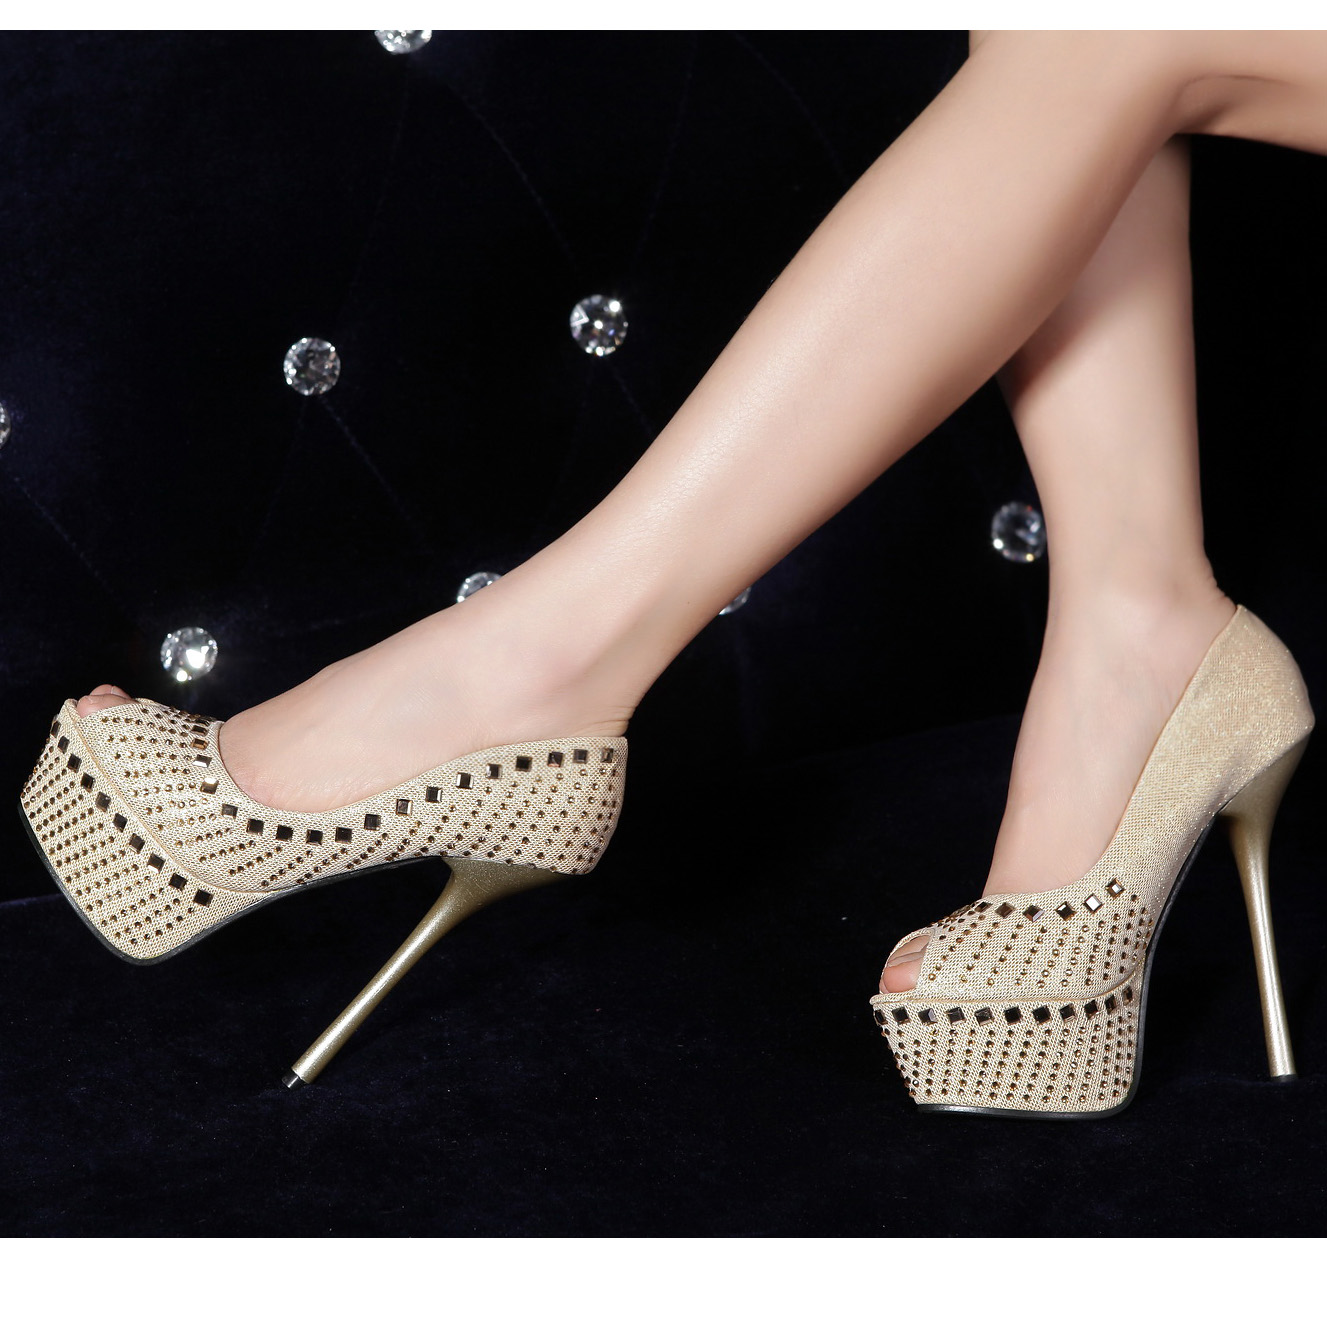 15 cm high heel stripper mules back from the gym 3